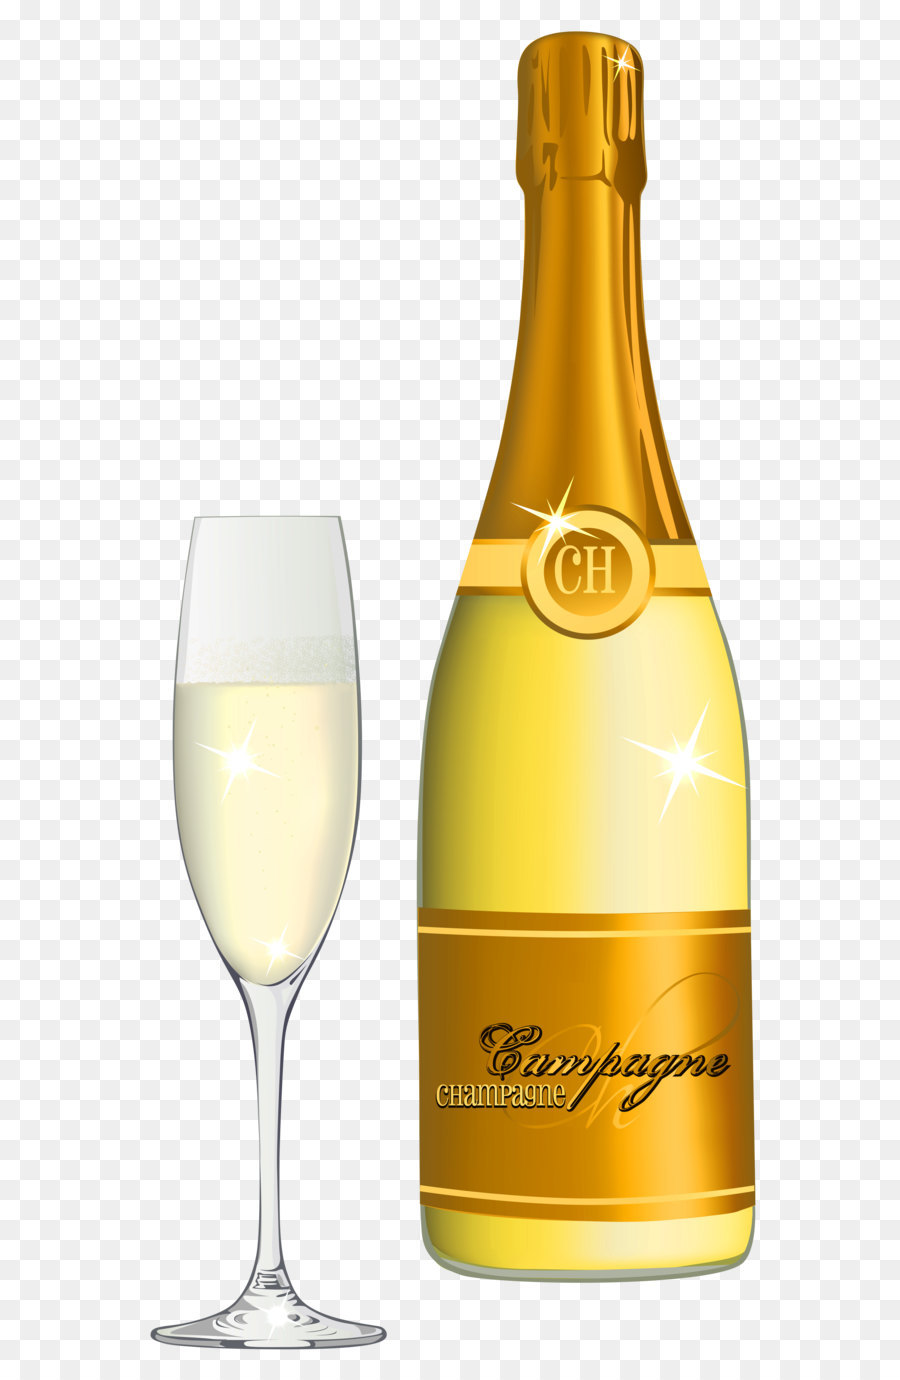 hight resolution of champagne cocktail champagne cocktail glass bottle drink png